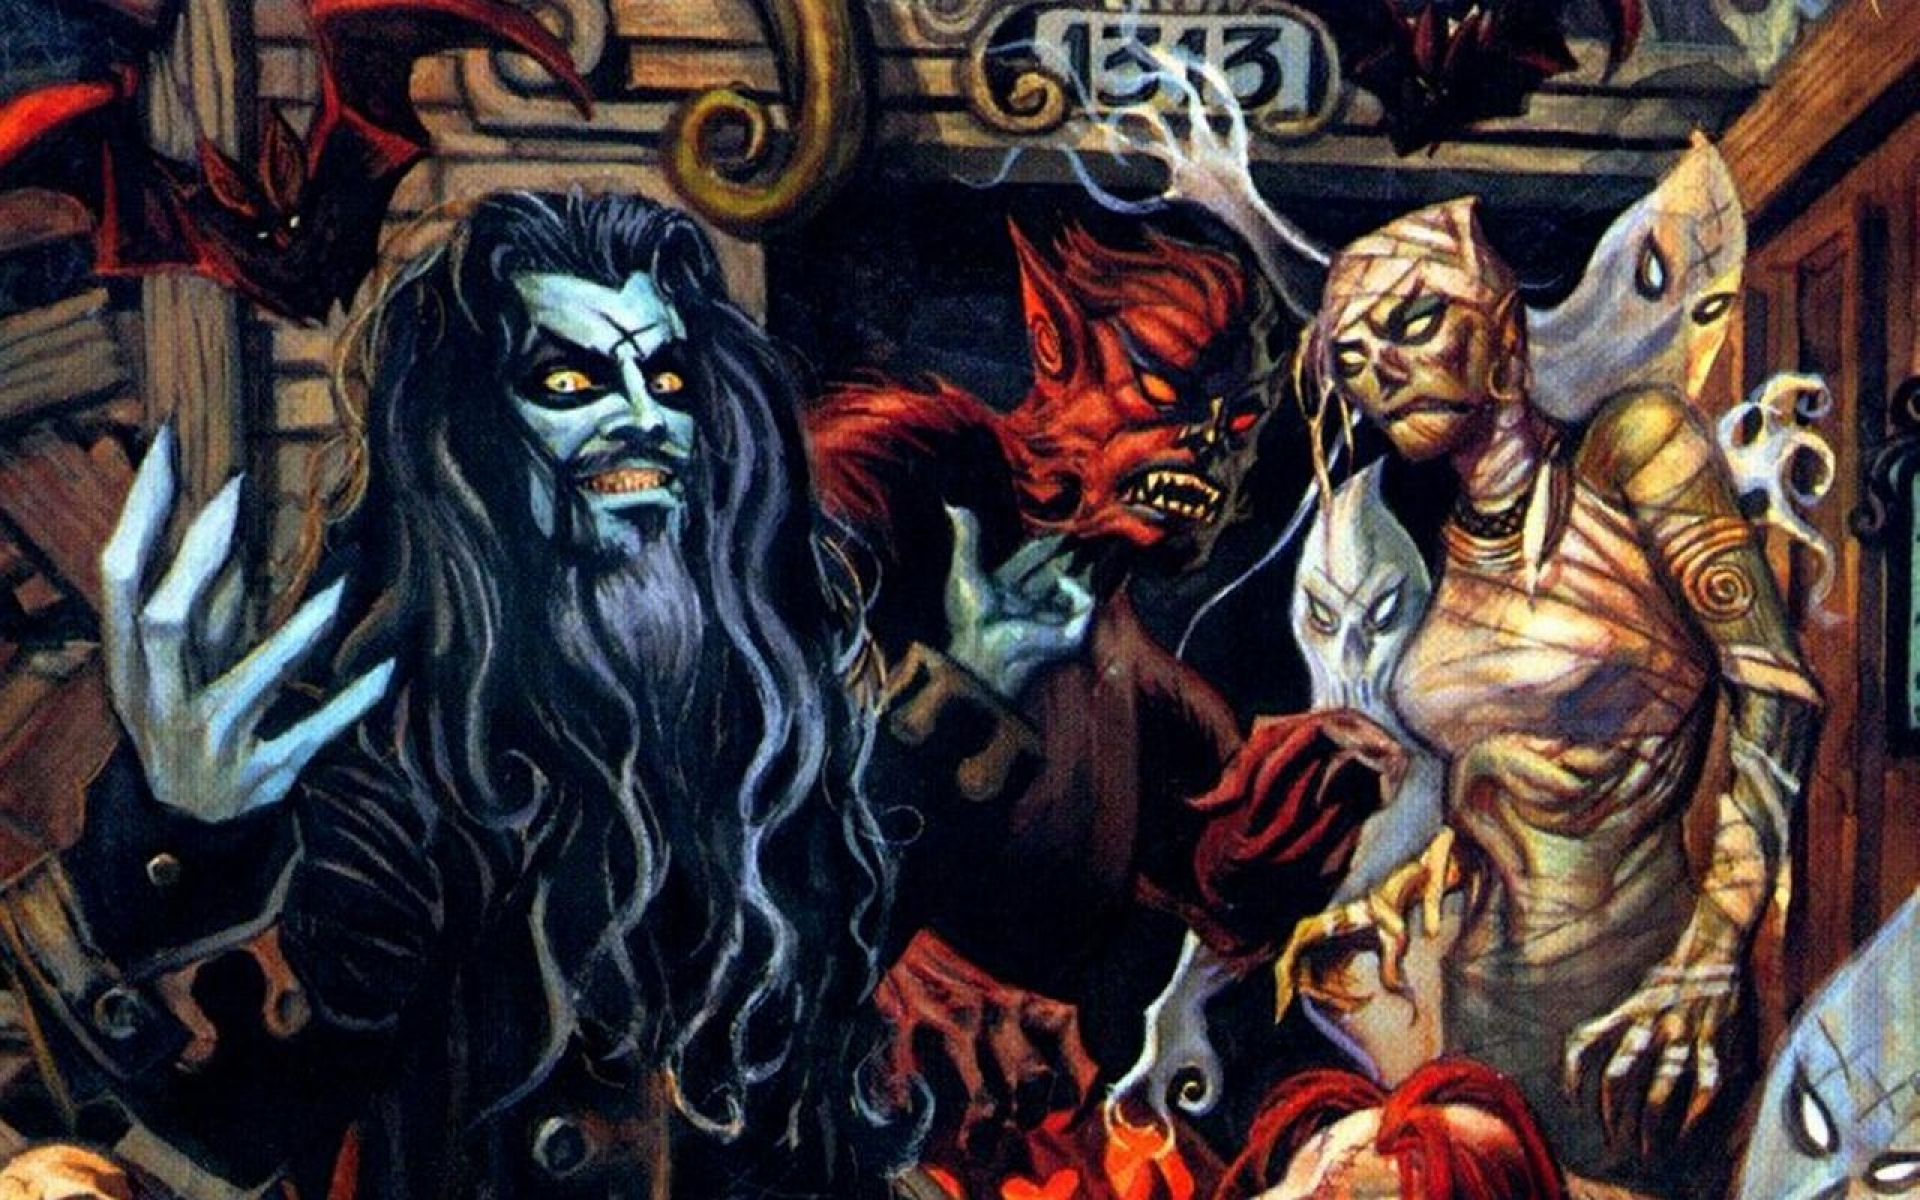 Zombie Artwork Wallpaper ROB ZOMBIE ART dark mo...